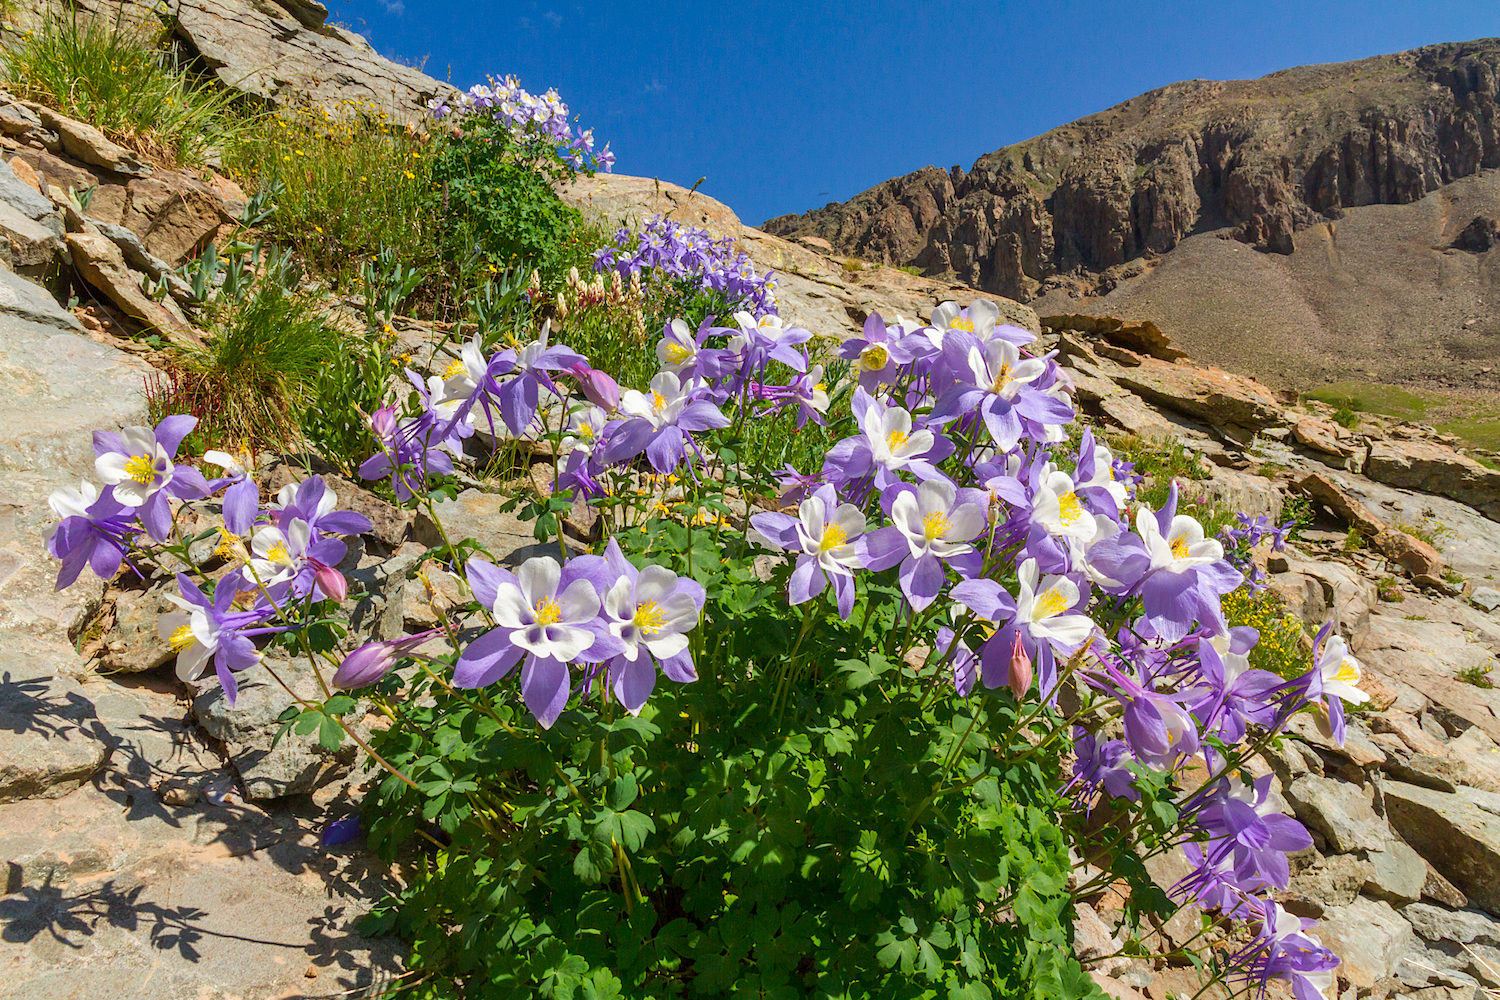 Clear Lake Wildflowers, Image # 3872